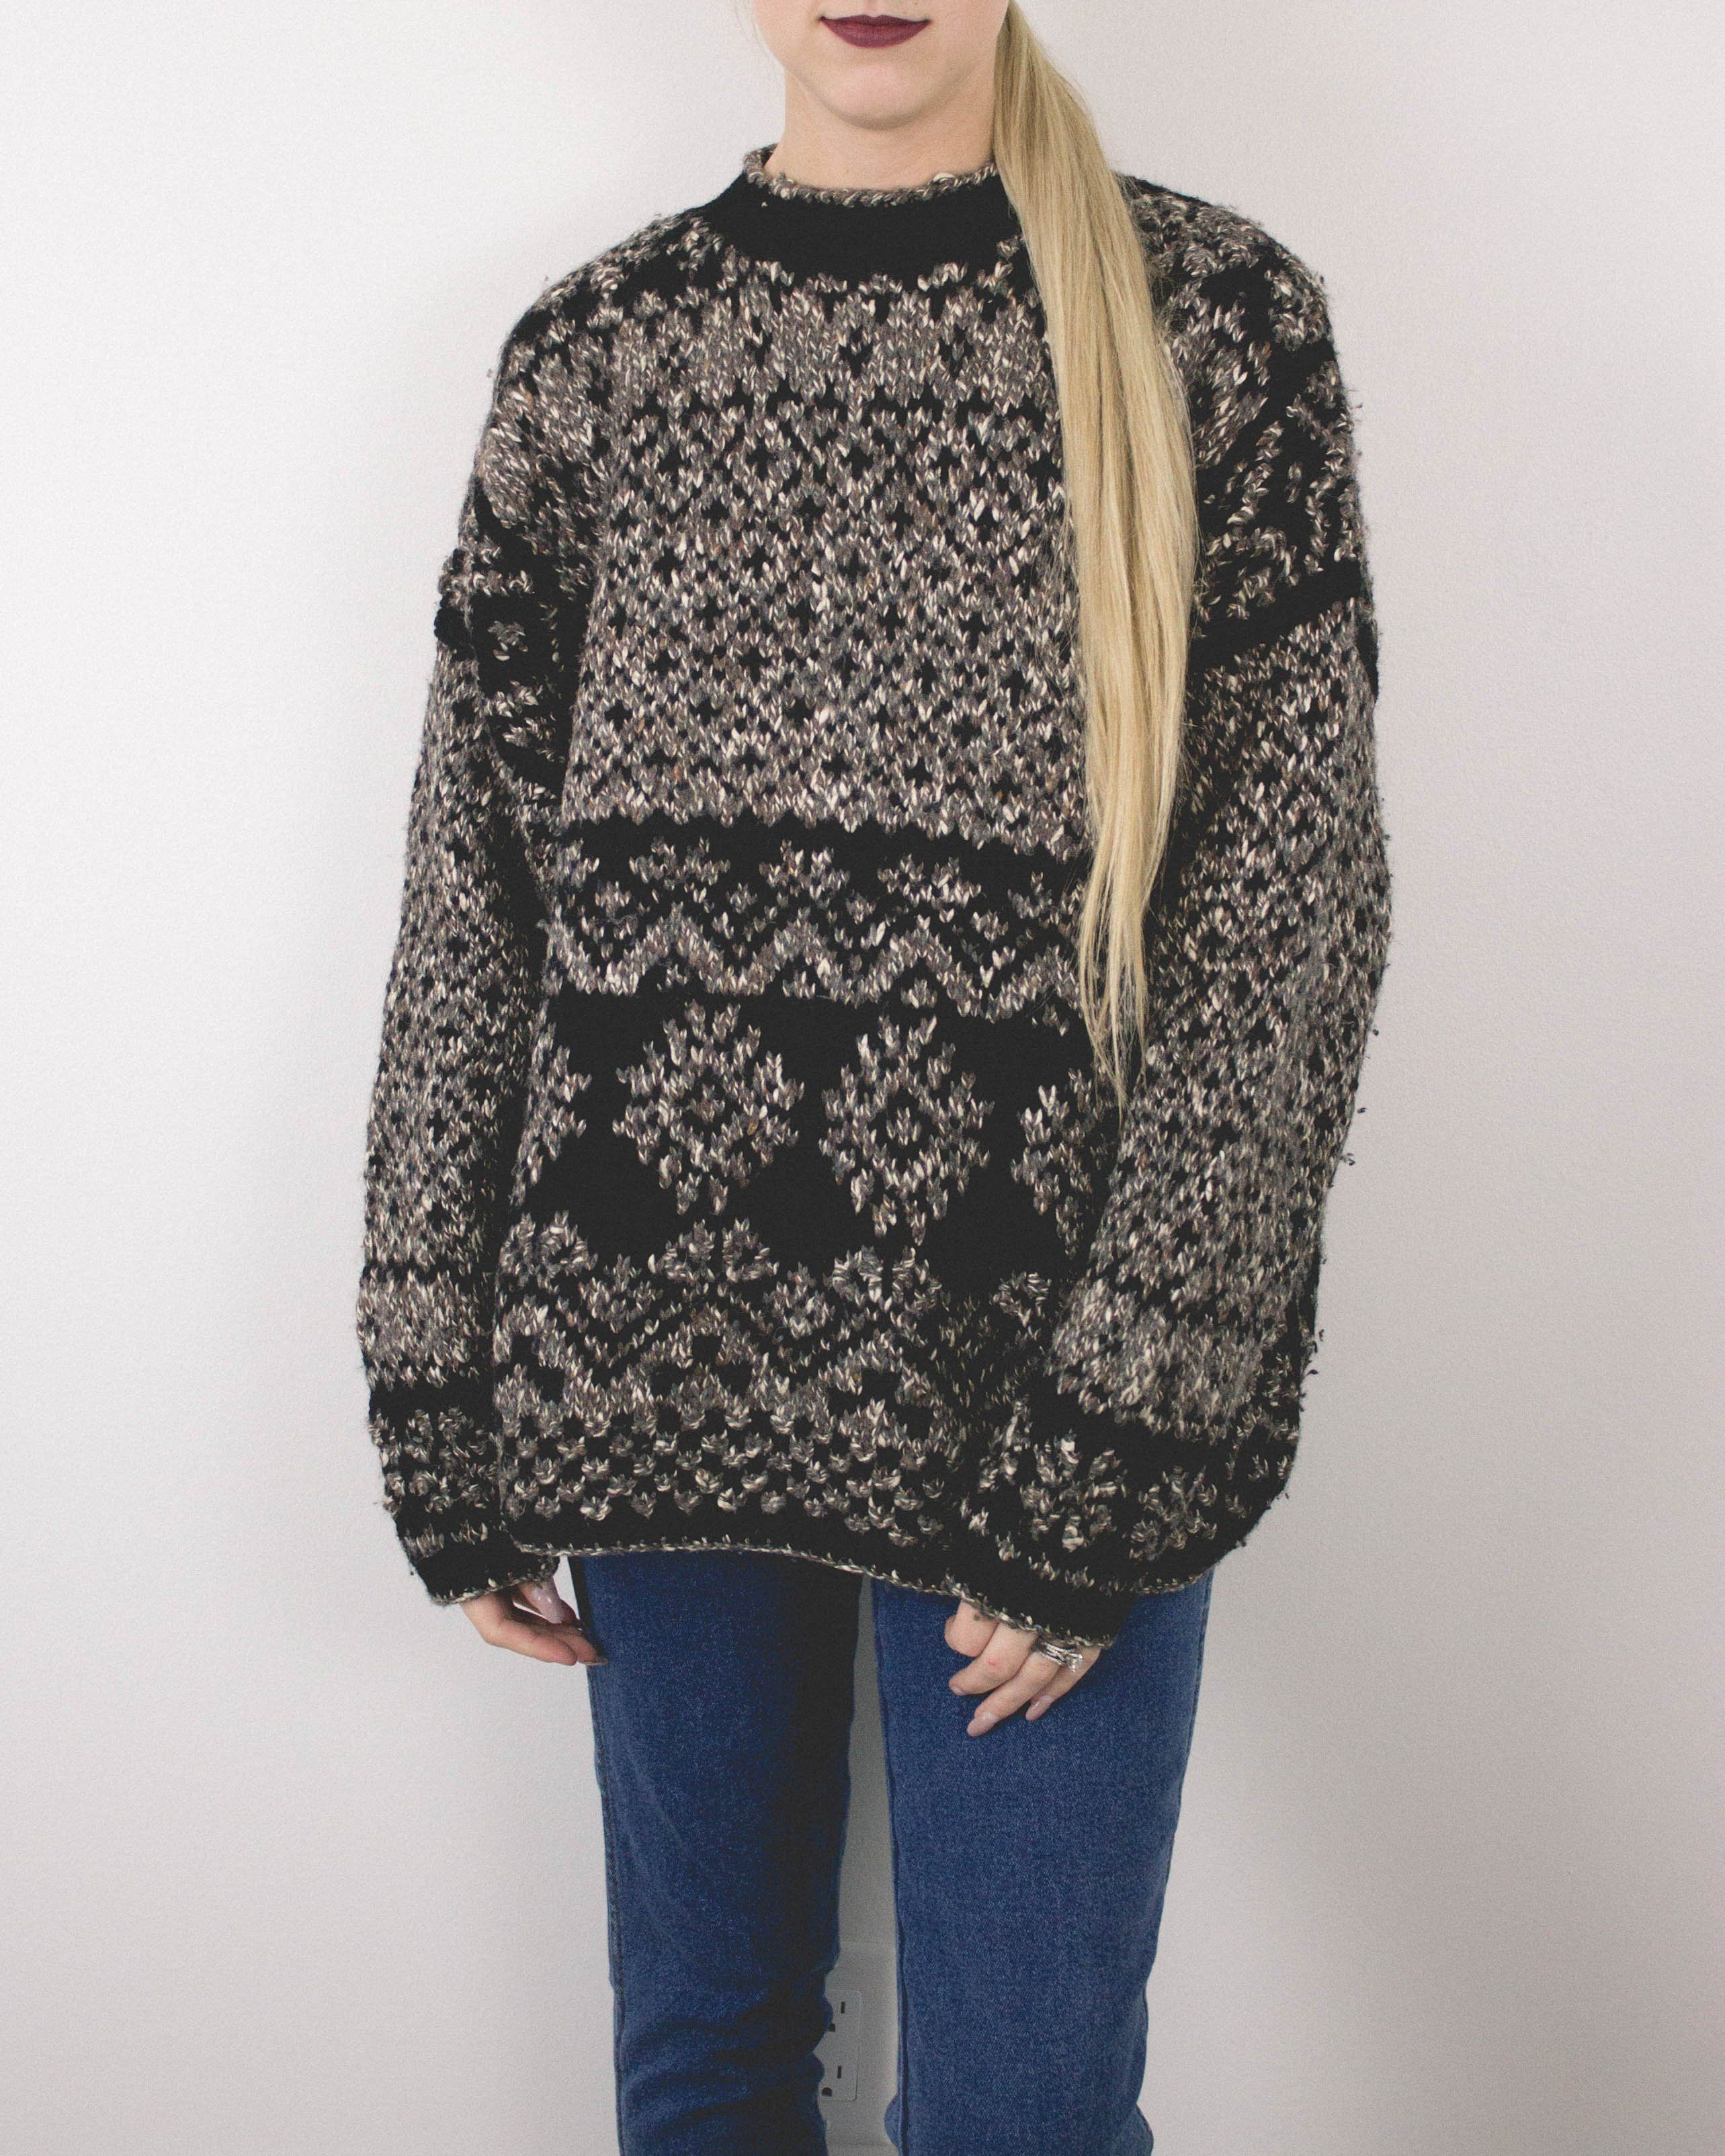 Vintage Marled Aztec Sweater | Products | Pinterest | Aztec ...